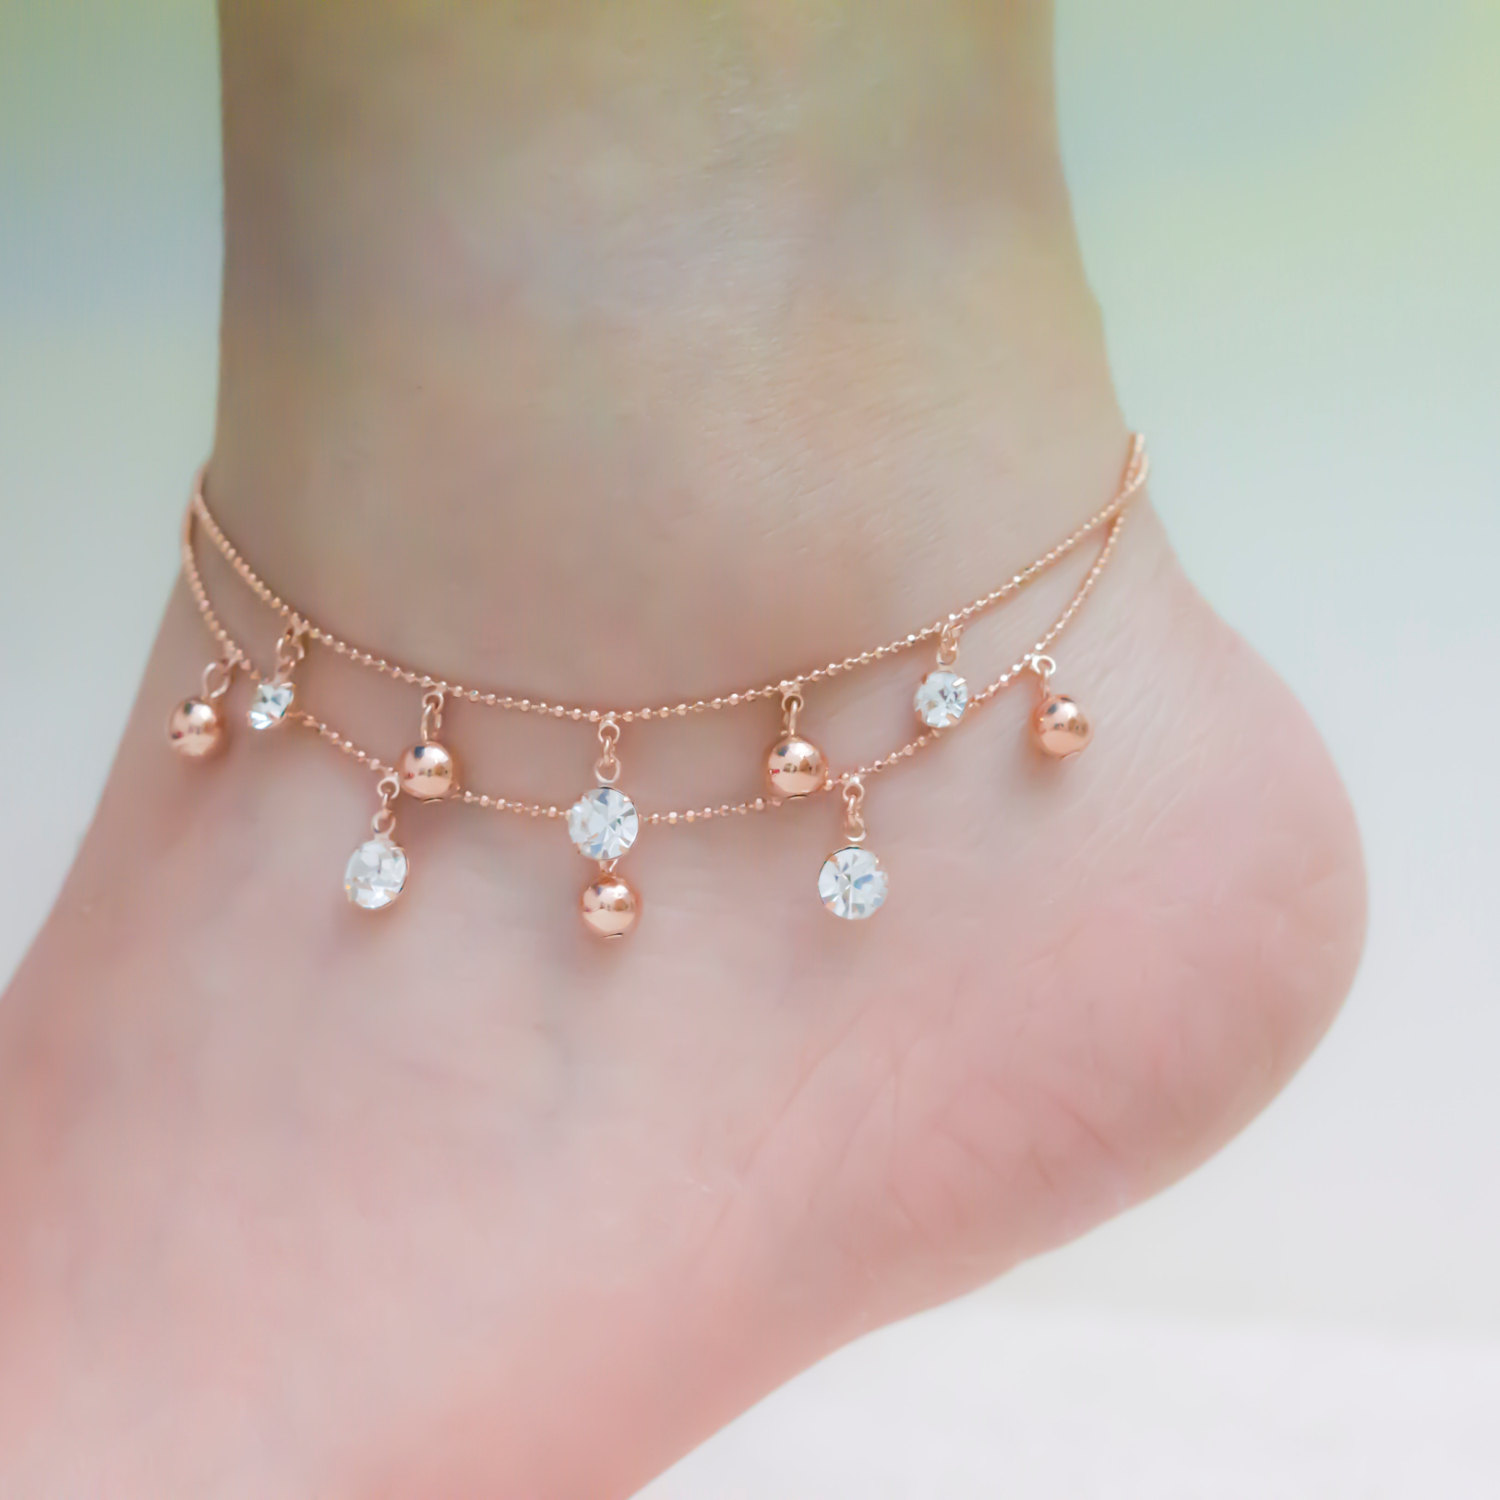 galla img the bracelet anklet of necklace image name or collection product three